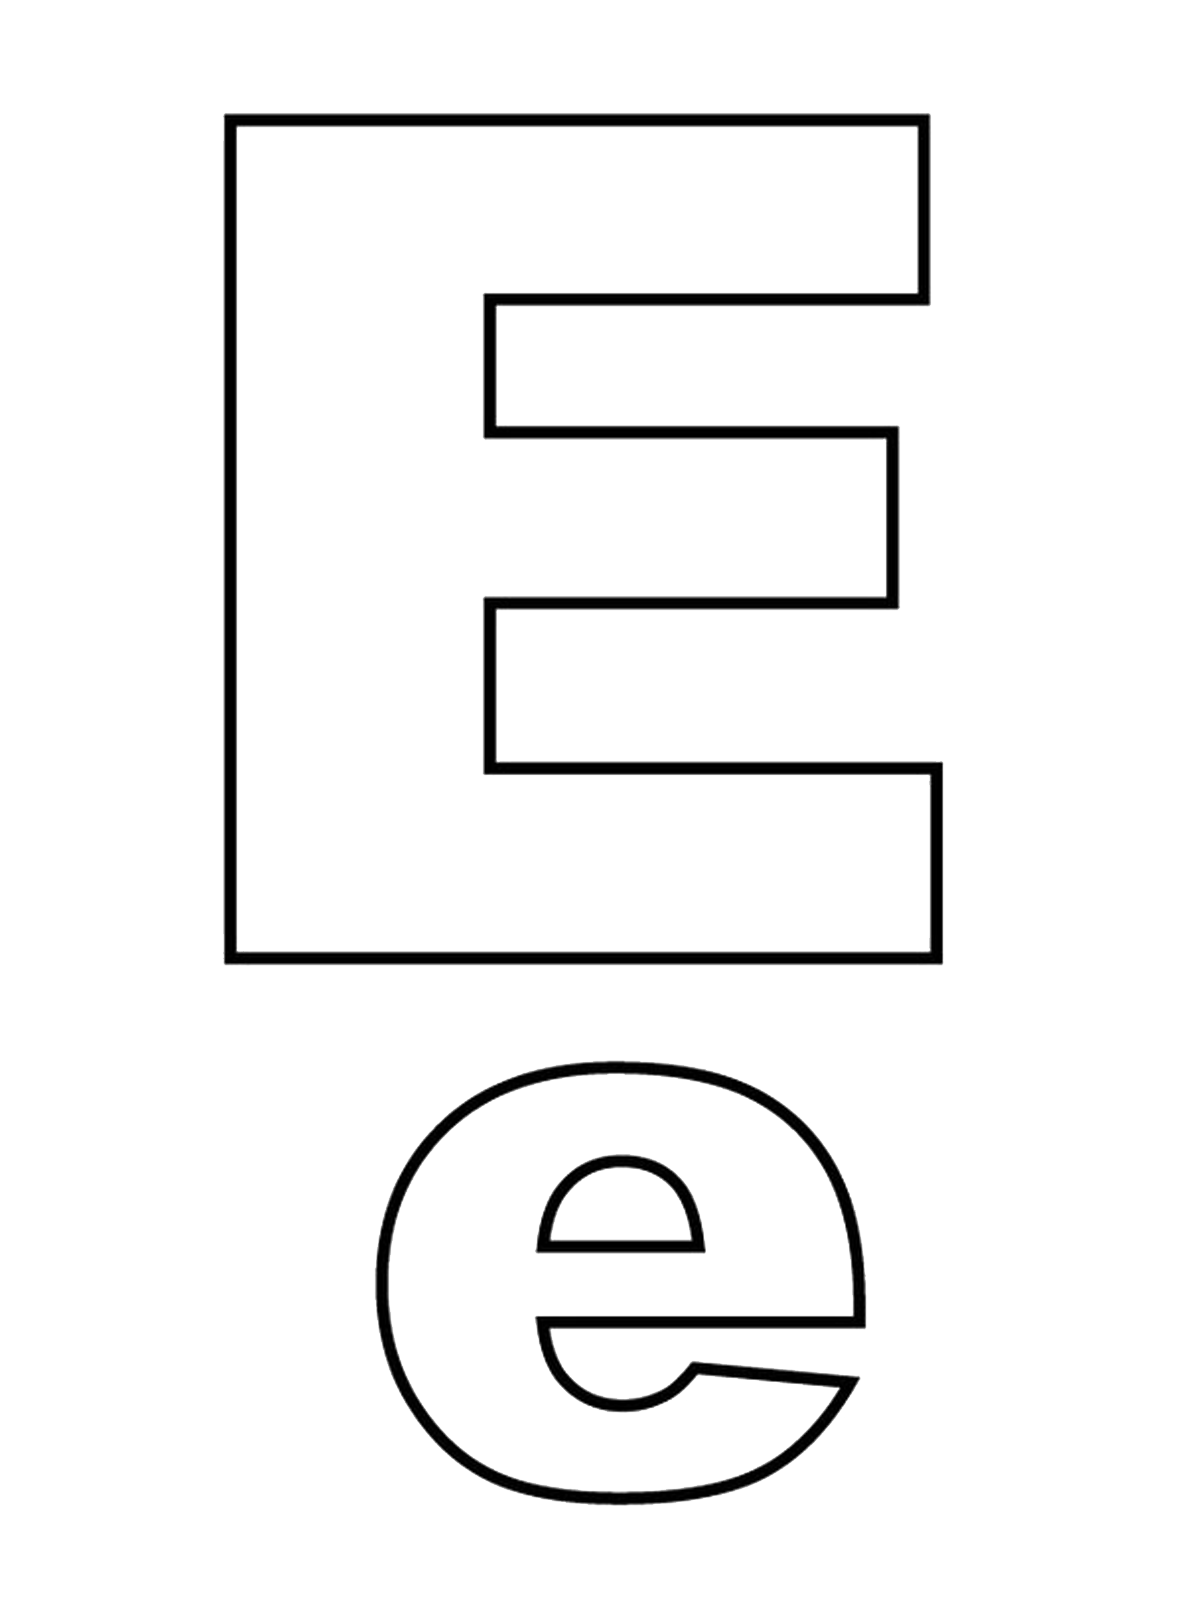 Letters and numbers   Letter E capital letters and lowercase